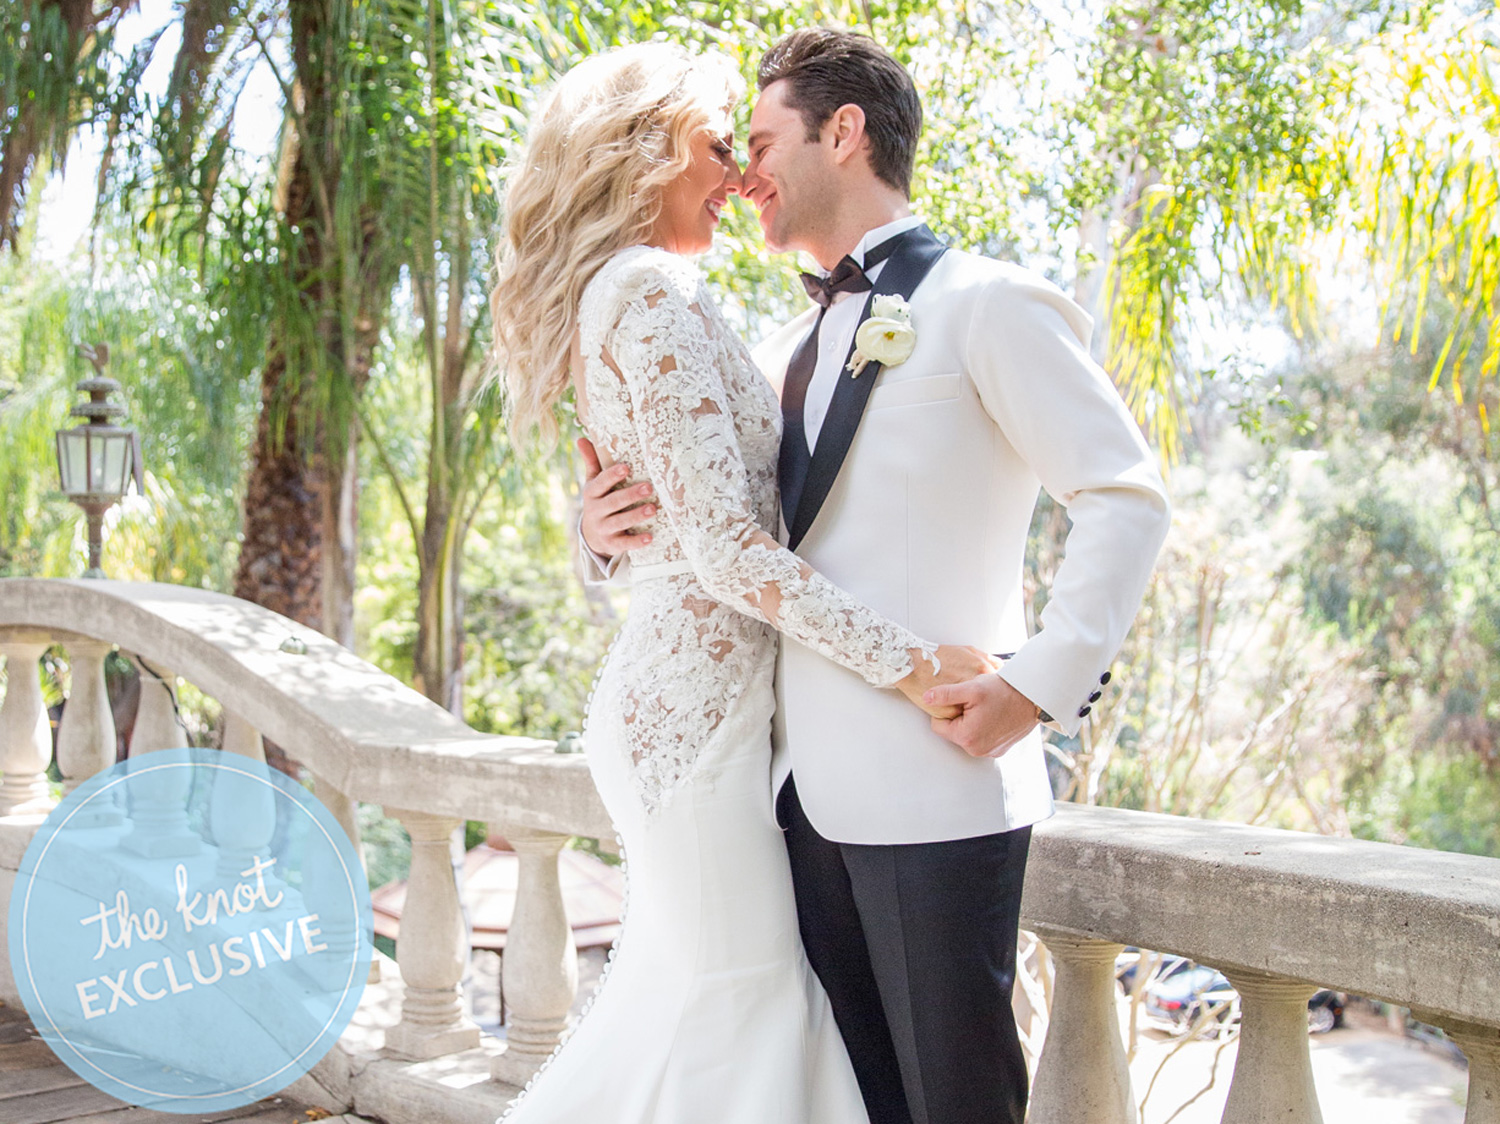 emma slater and sasha farber share their complete wedding